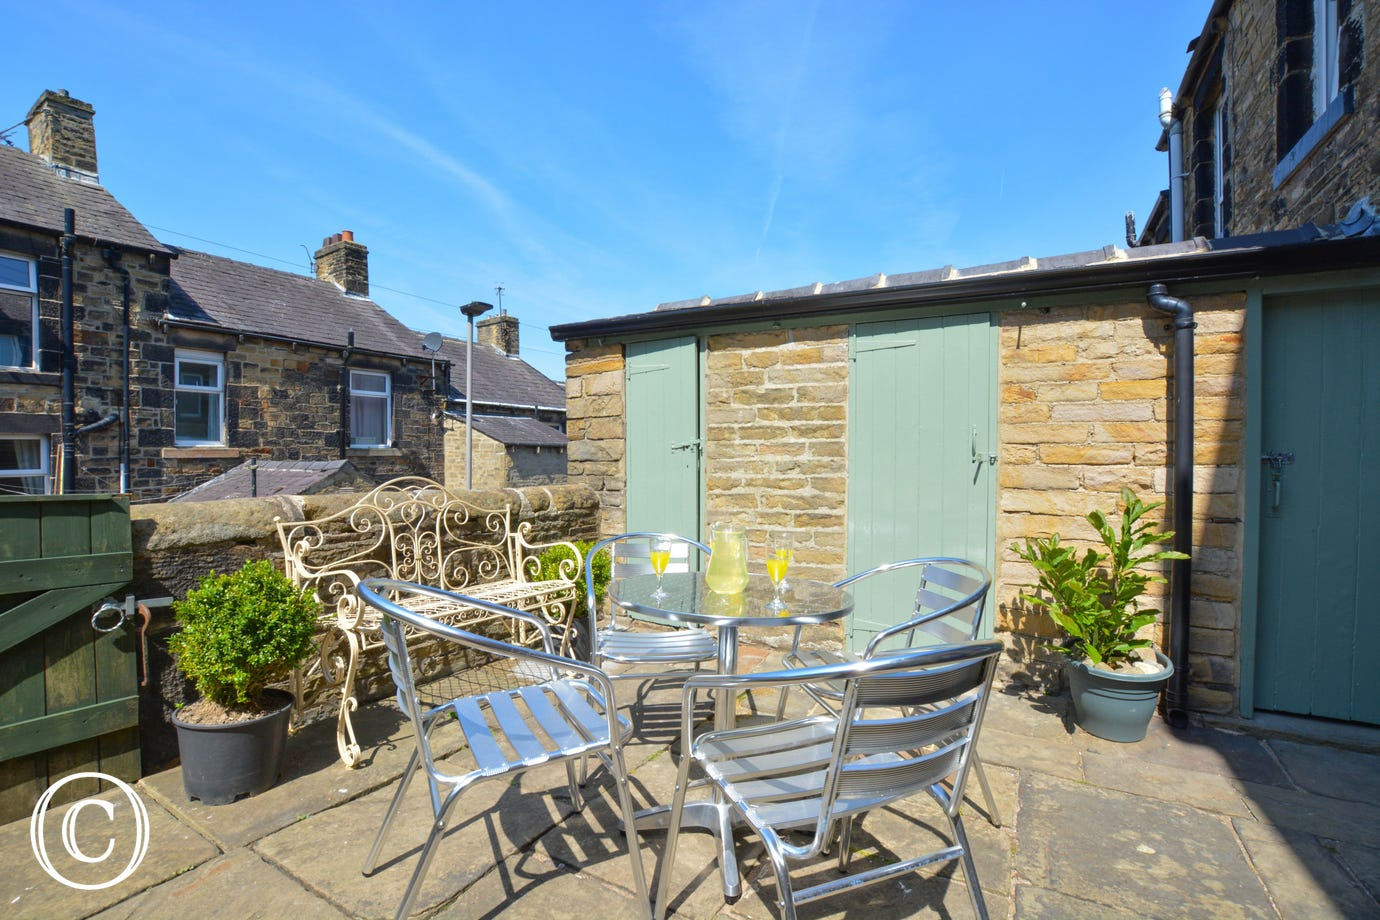 Sunny patio area at Green Gable